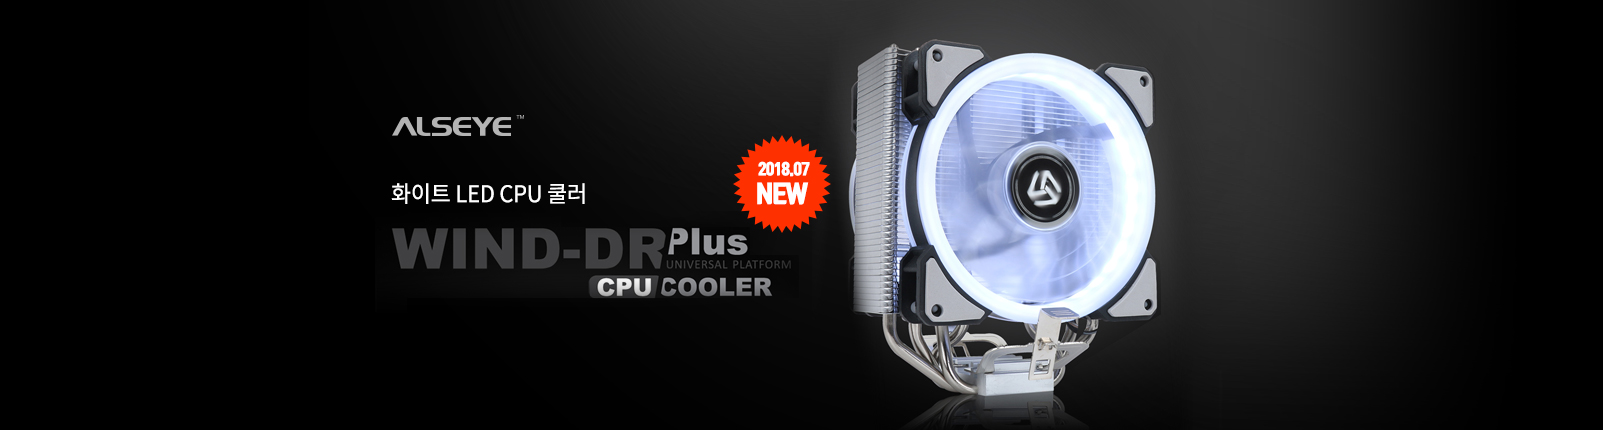 DR_White LED_COOLER